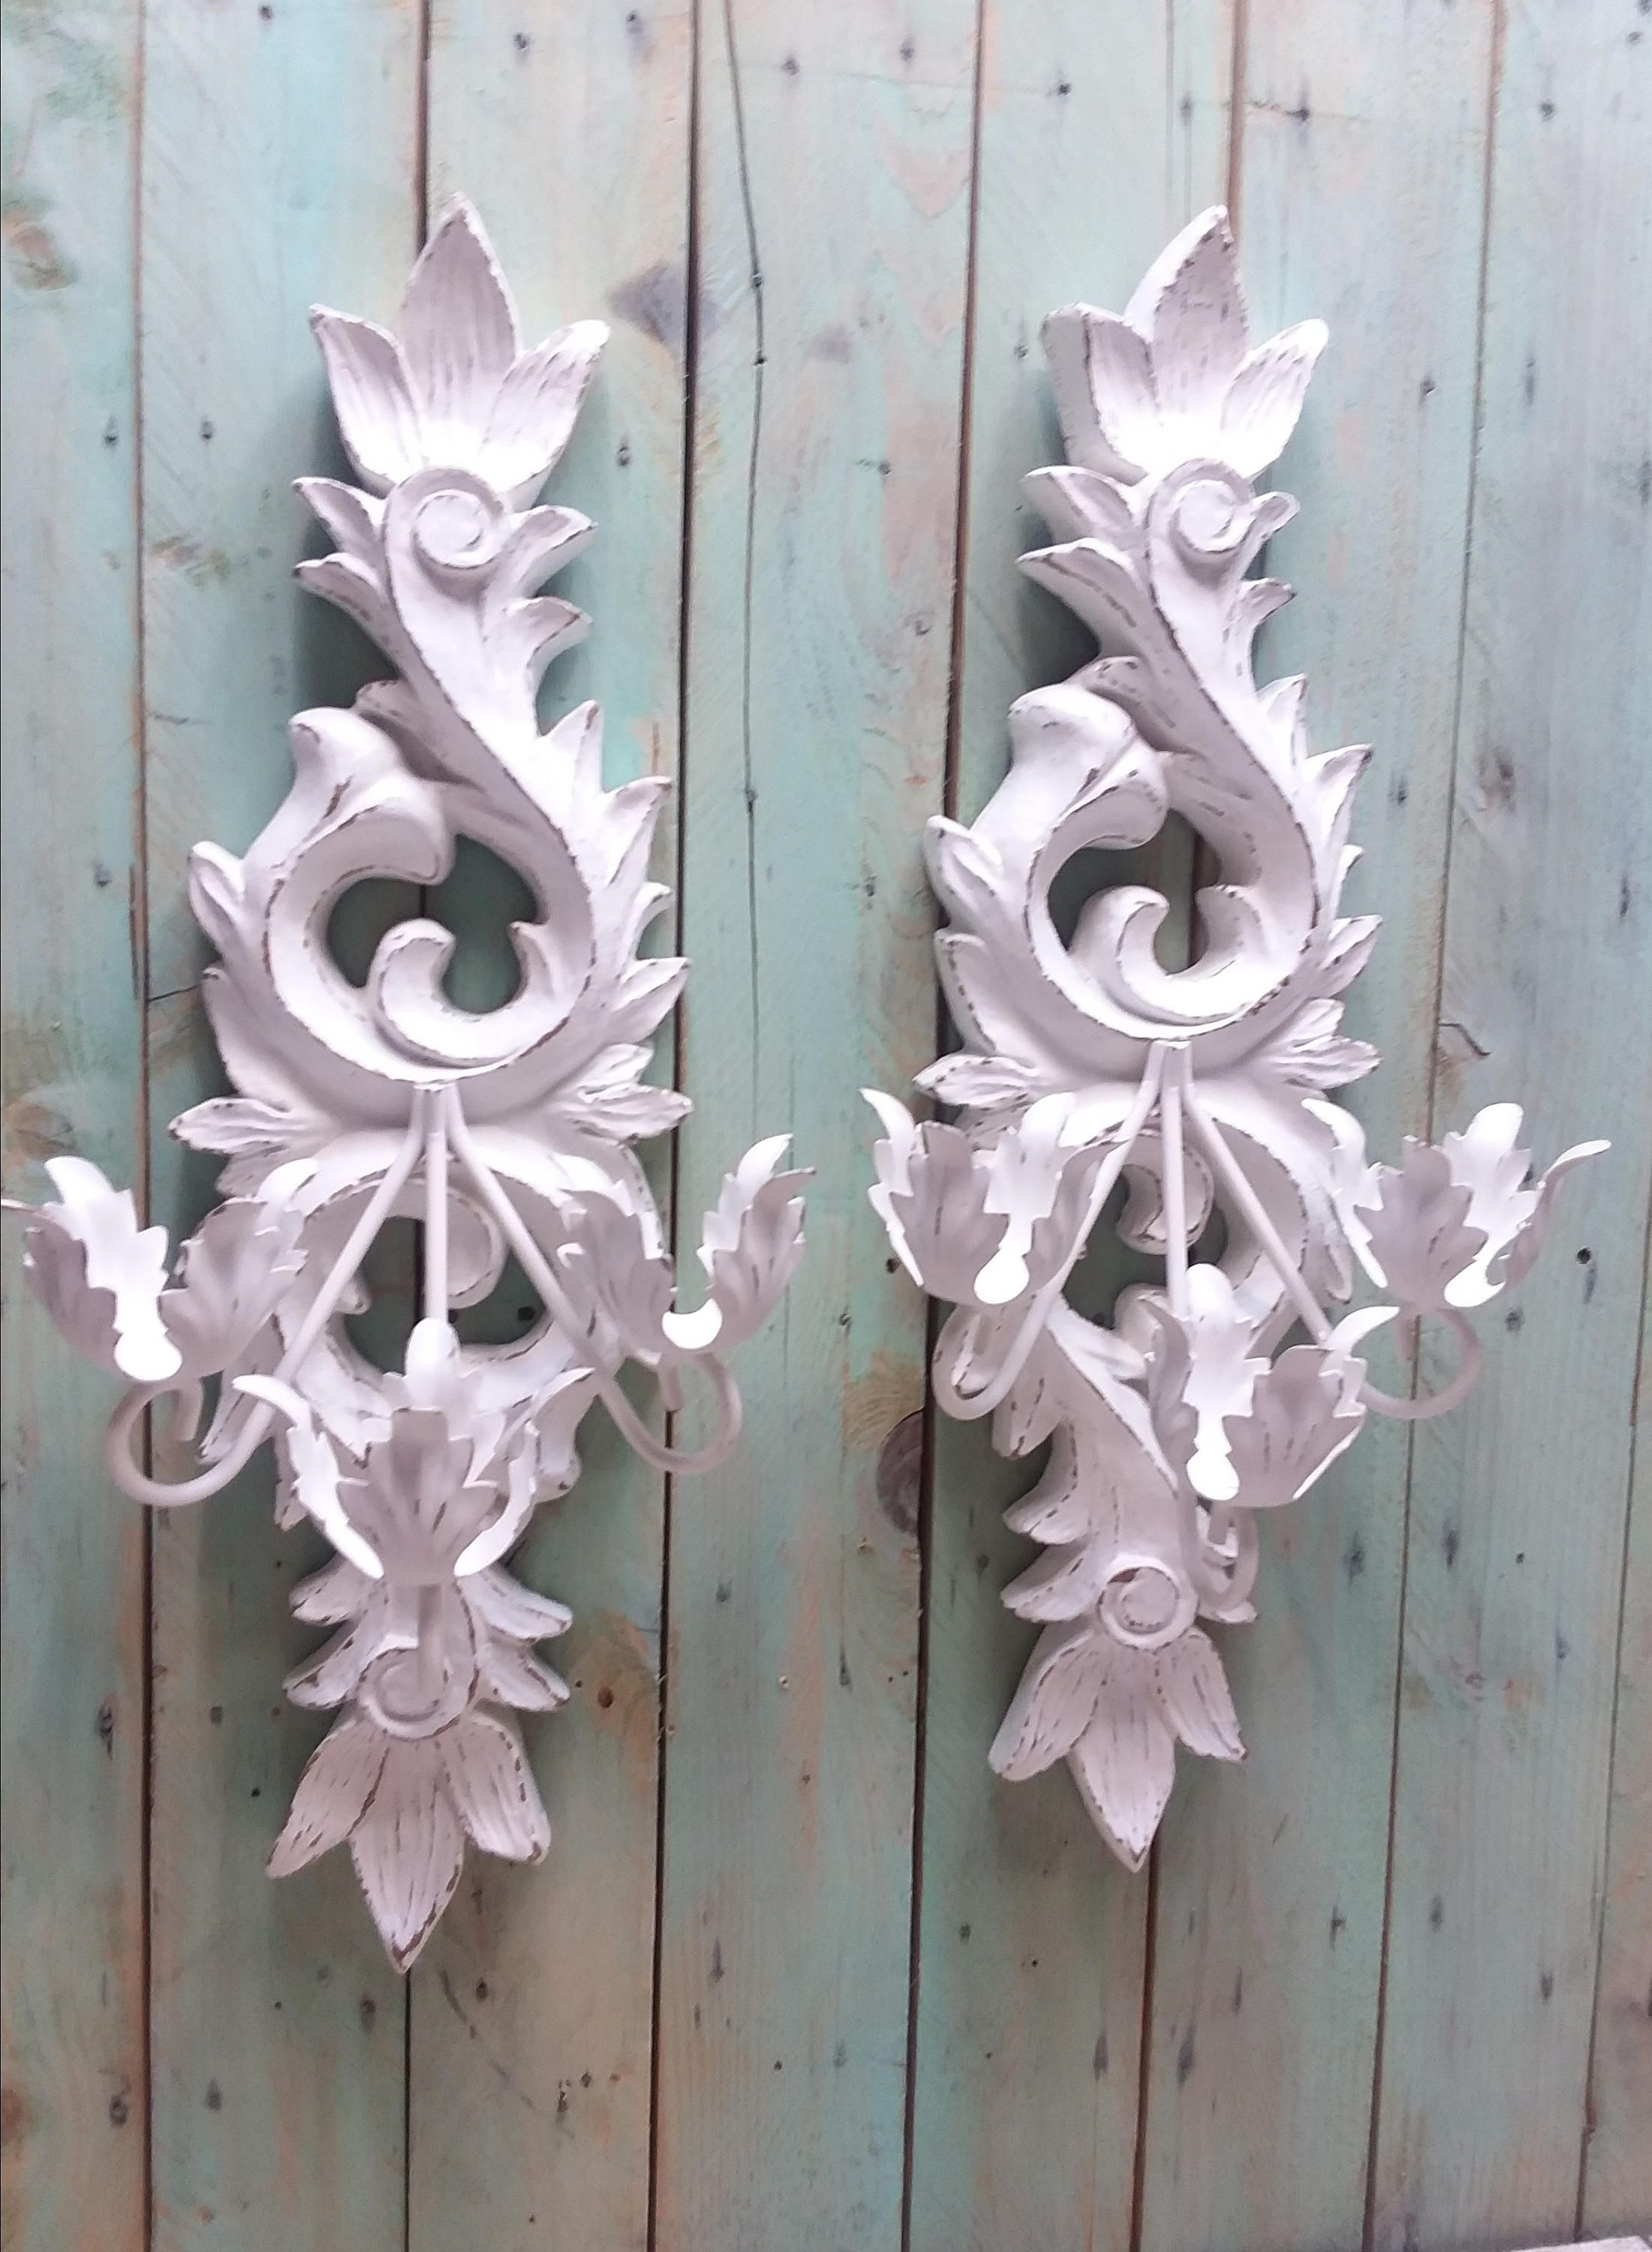 Large Shabby Chic Vintage Ornate Candle Wall Sconces Painted Antique White And Distressed By Classykassie Wall Candles Candle Wall Sconces Outdoor Wall Sconce